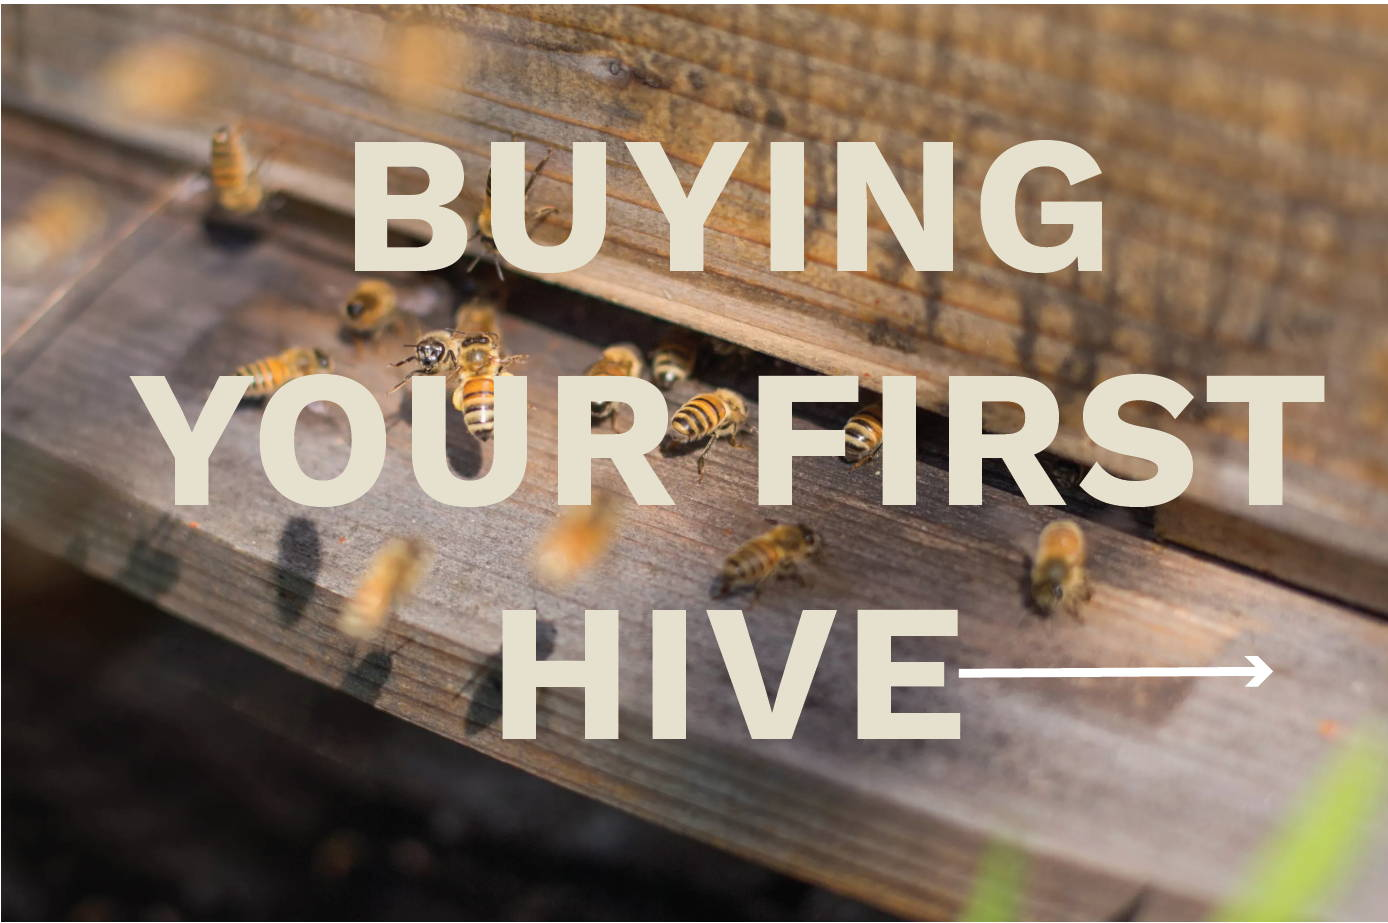 Click to learn more about buying your first hive.